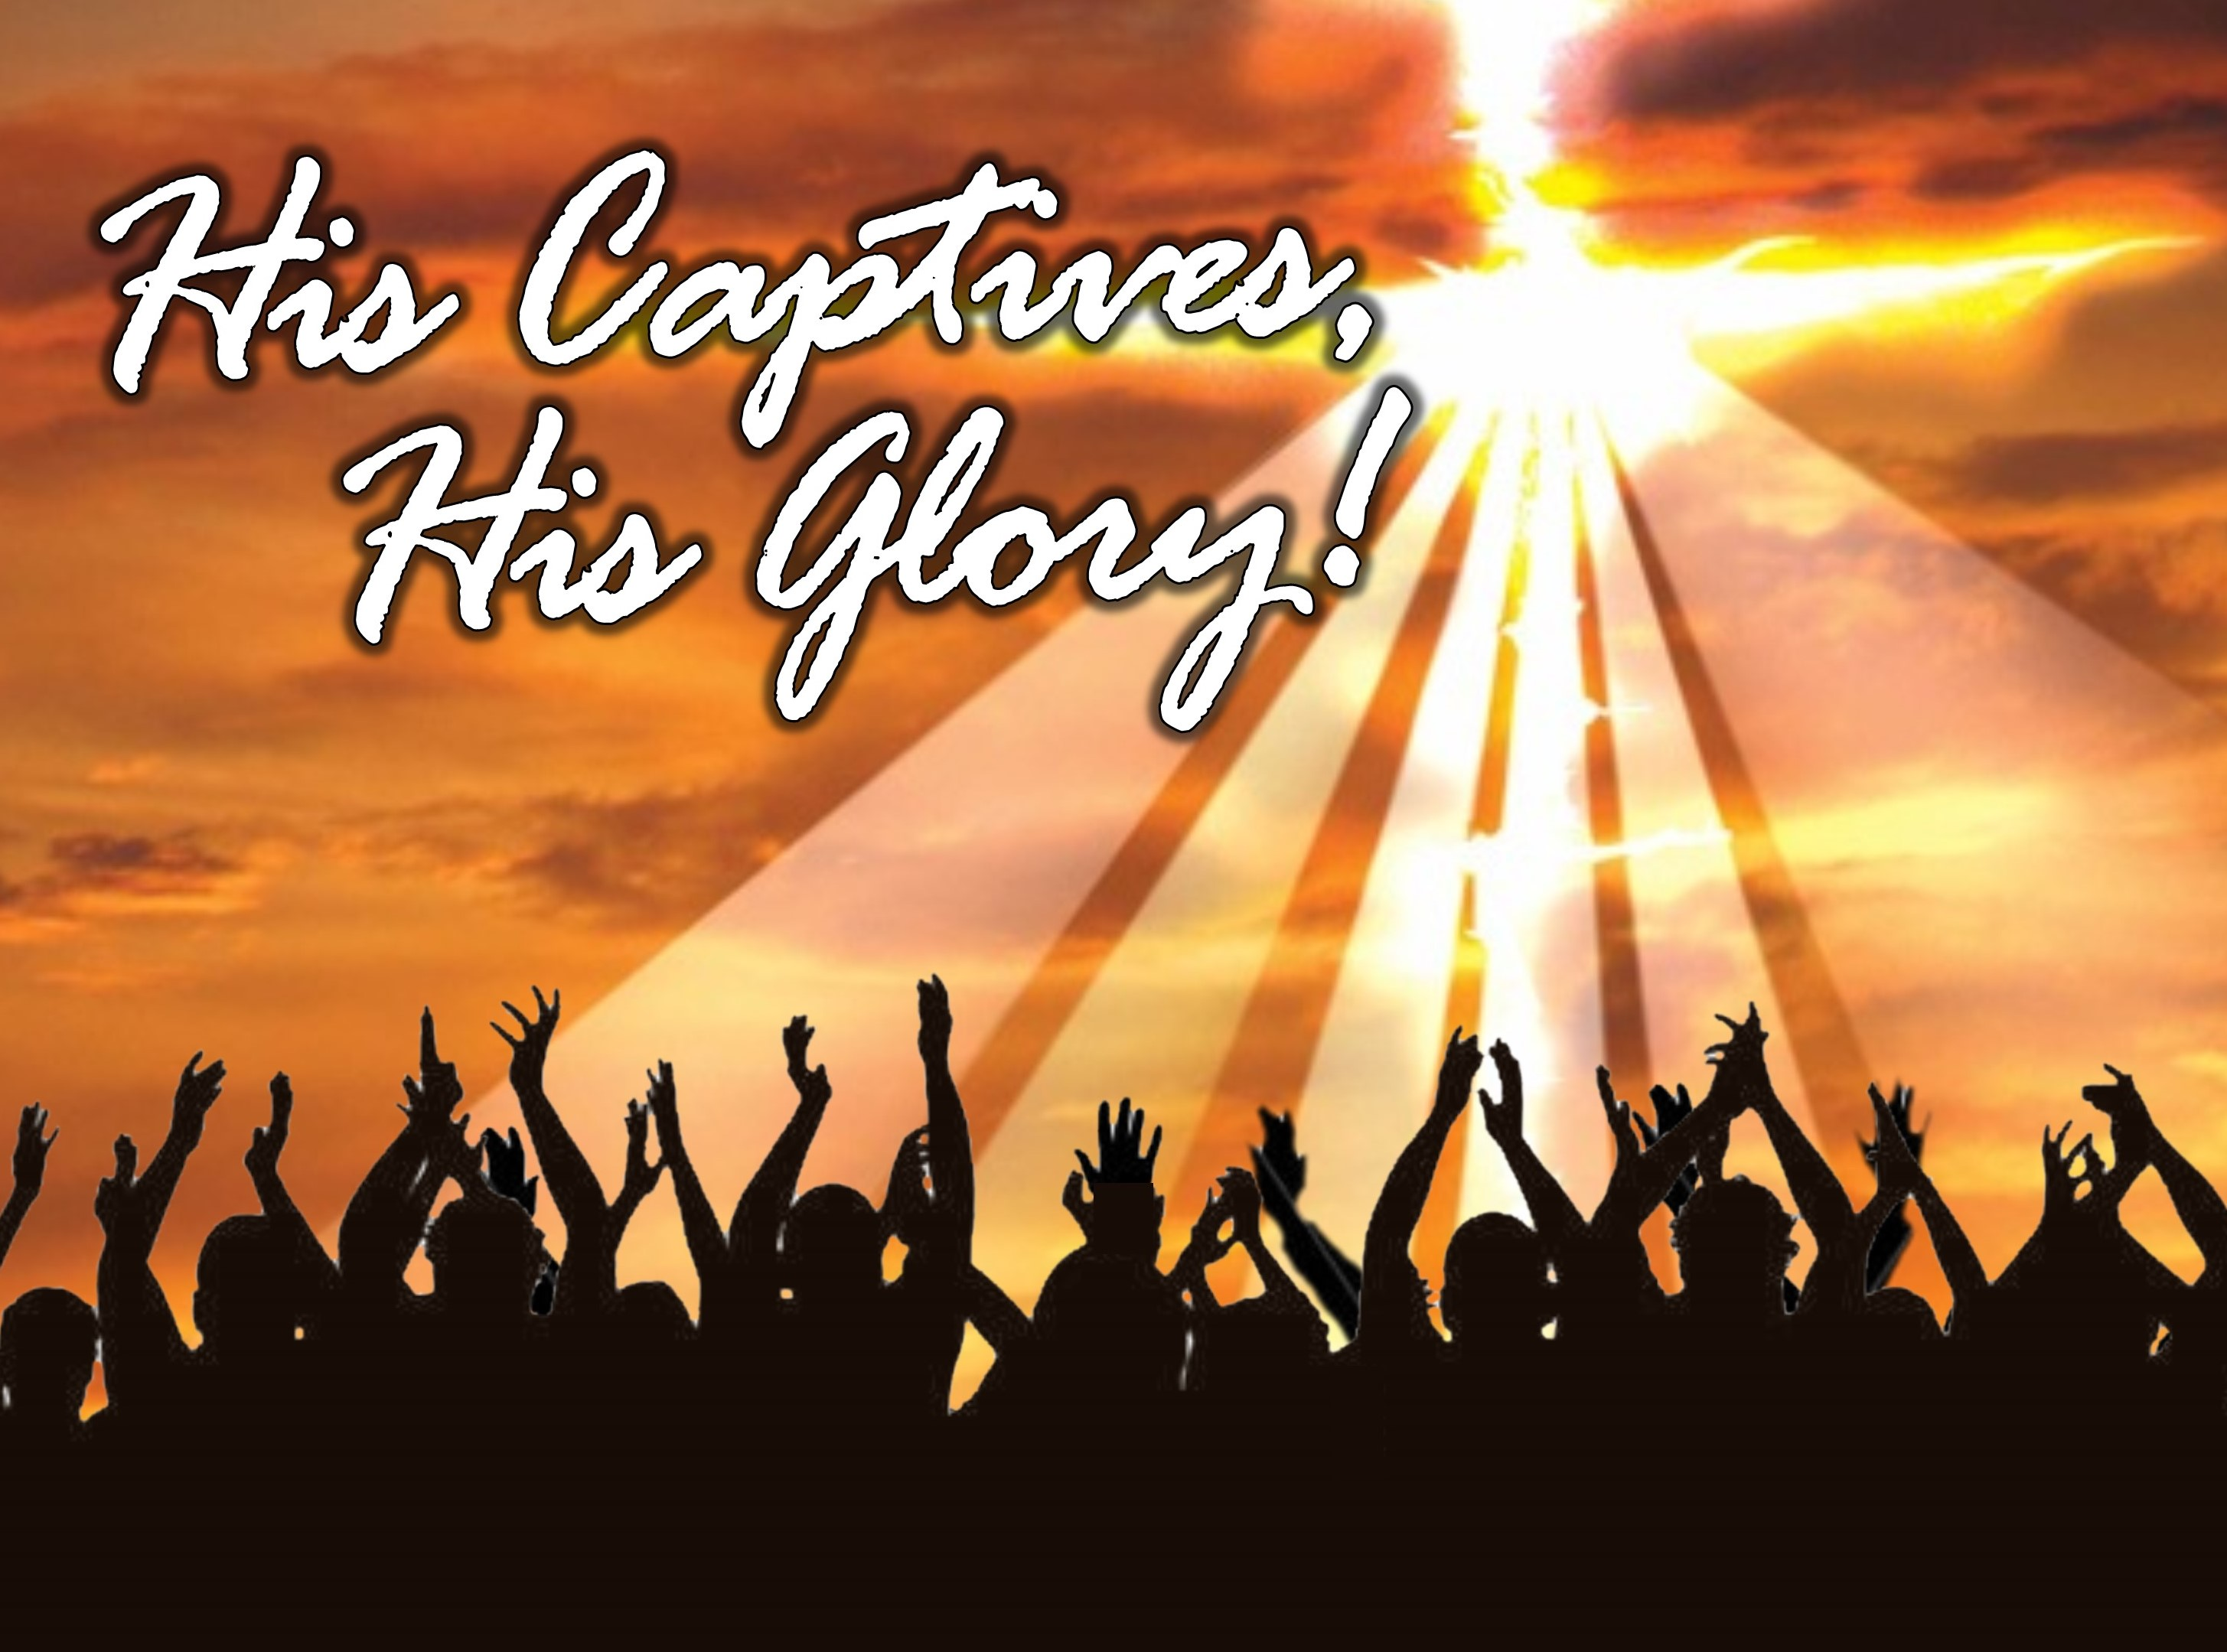 His Captives, His Glory